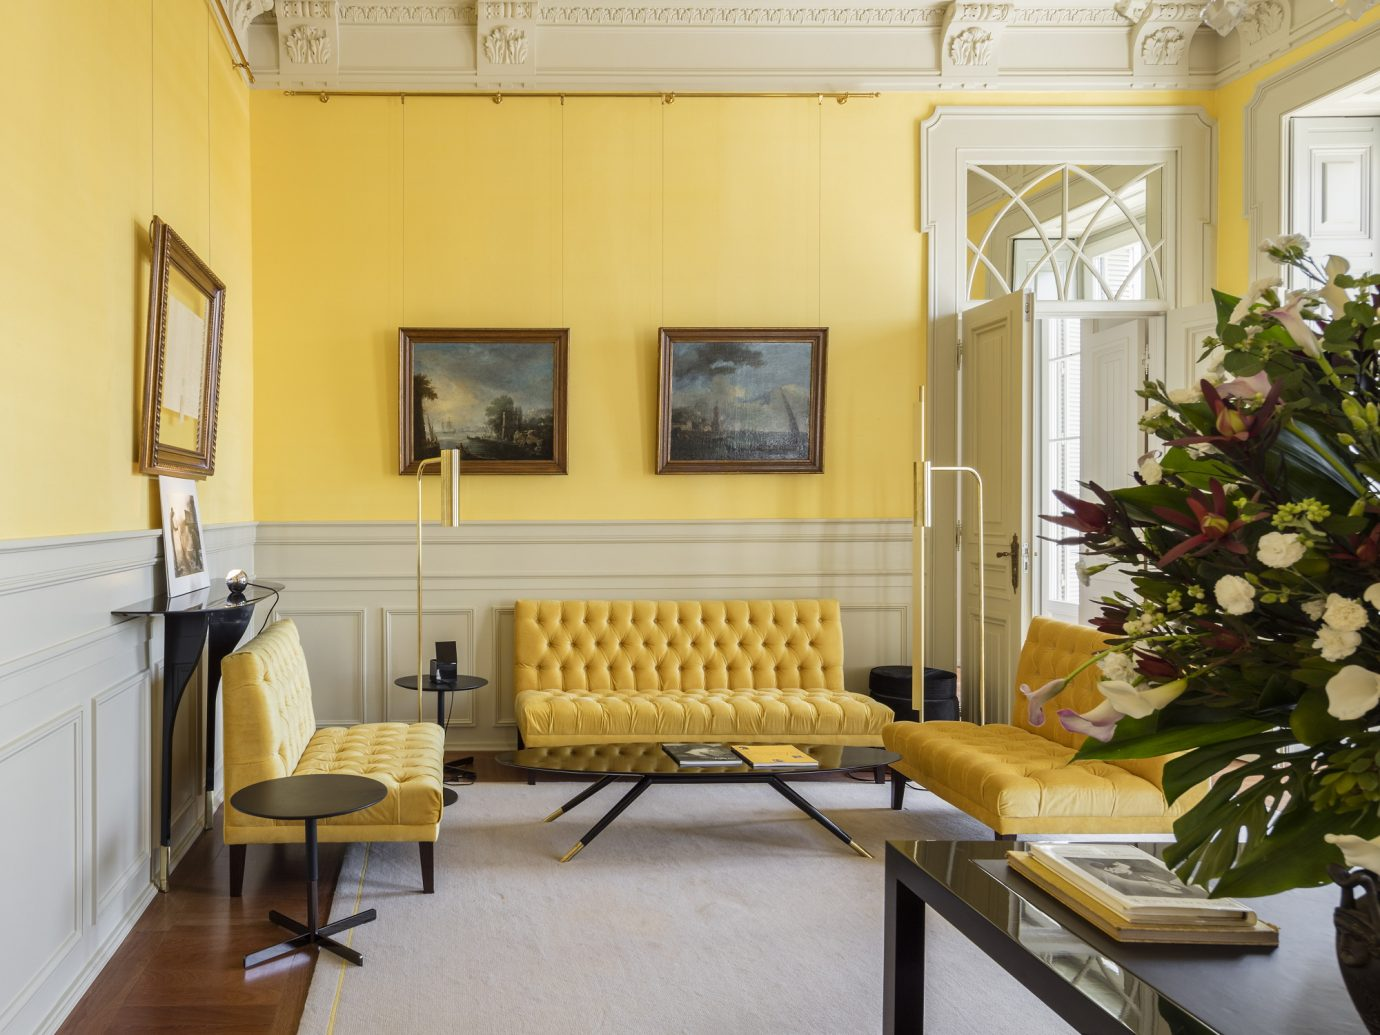 Luxurious room with bright yellow decor at Verride Palácio Santa Catarina